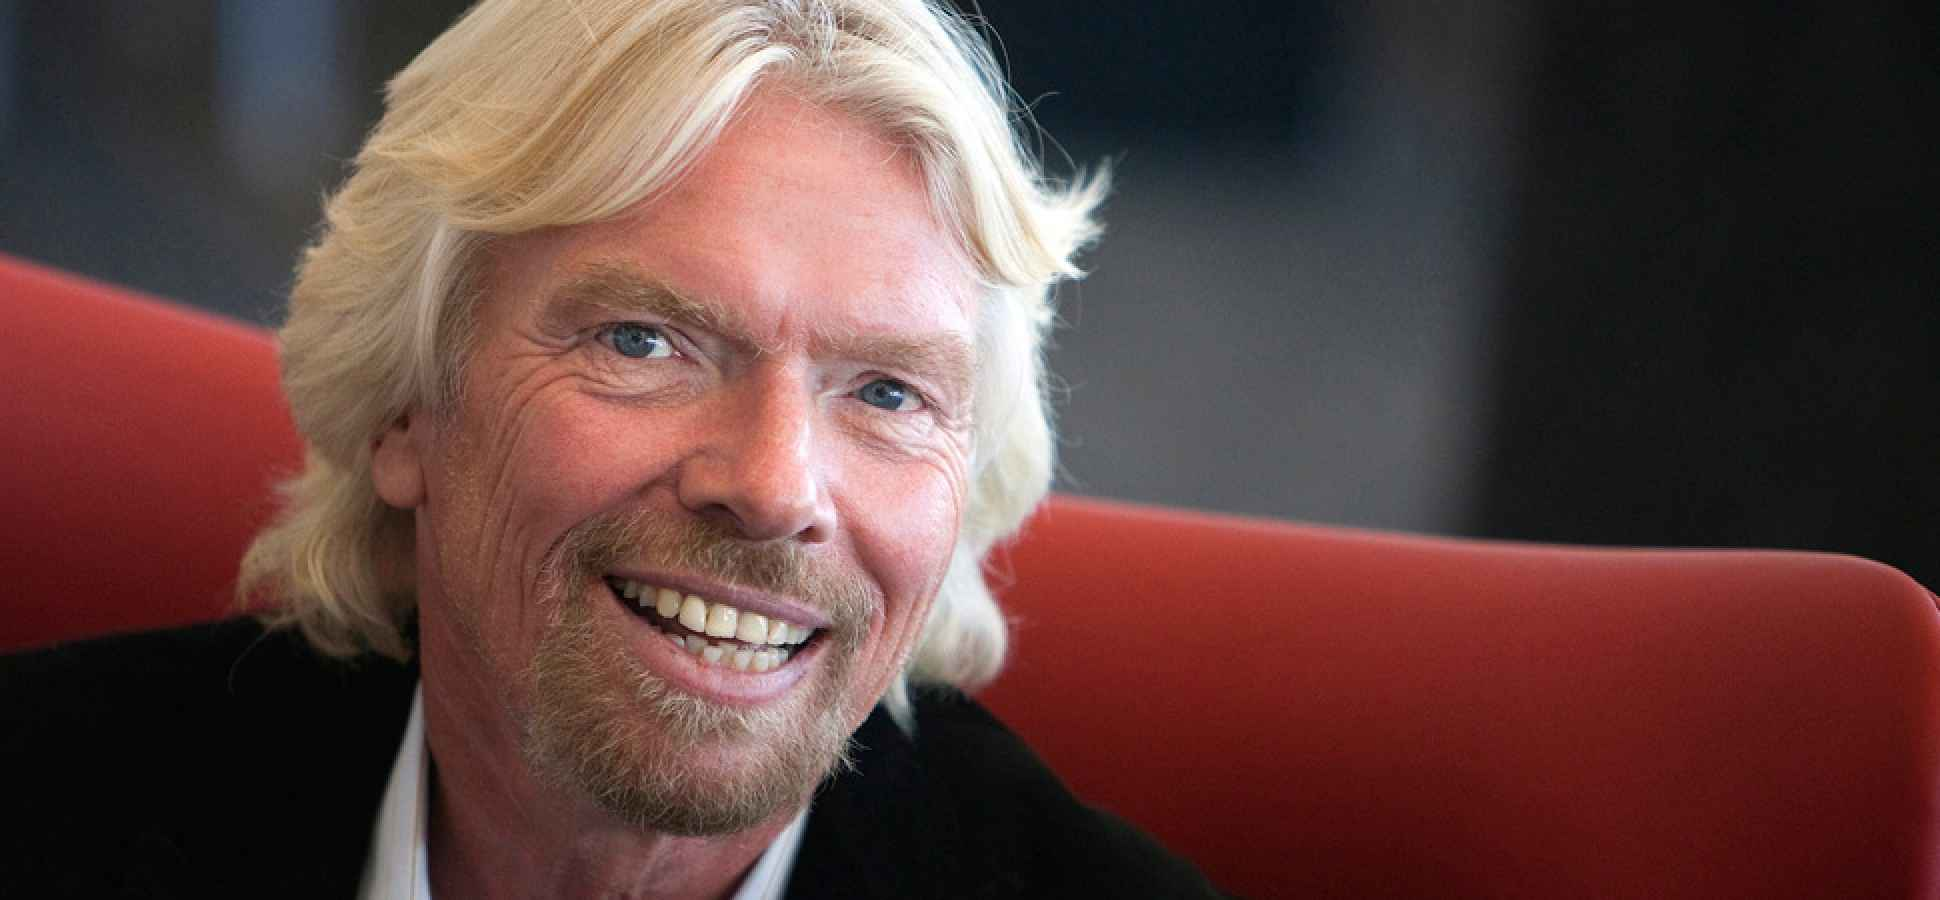 Richard Branson to Young Entrepreneurs: 'Just Do It'